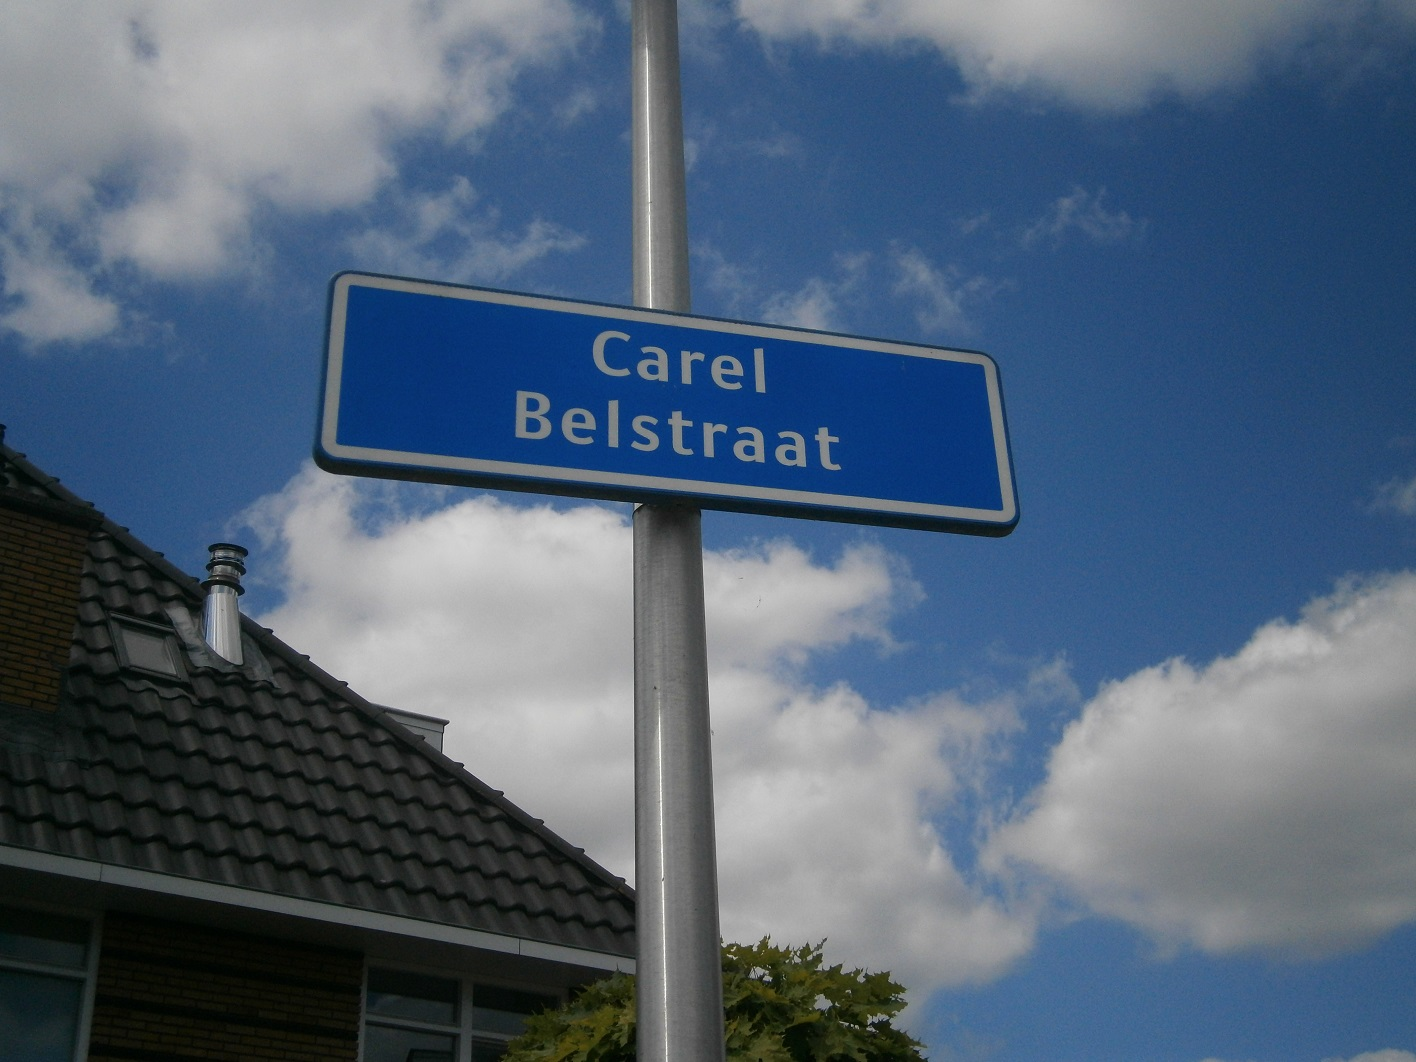 Carel Belstraat straatnaambord.JPG